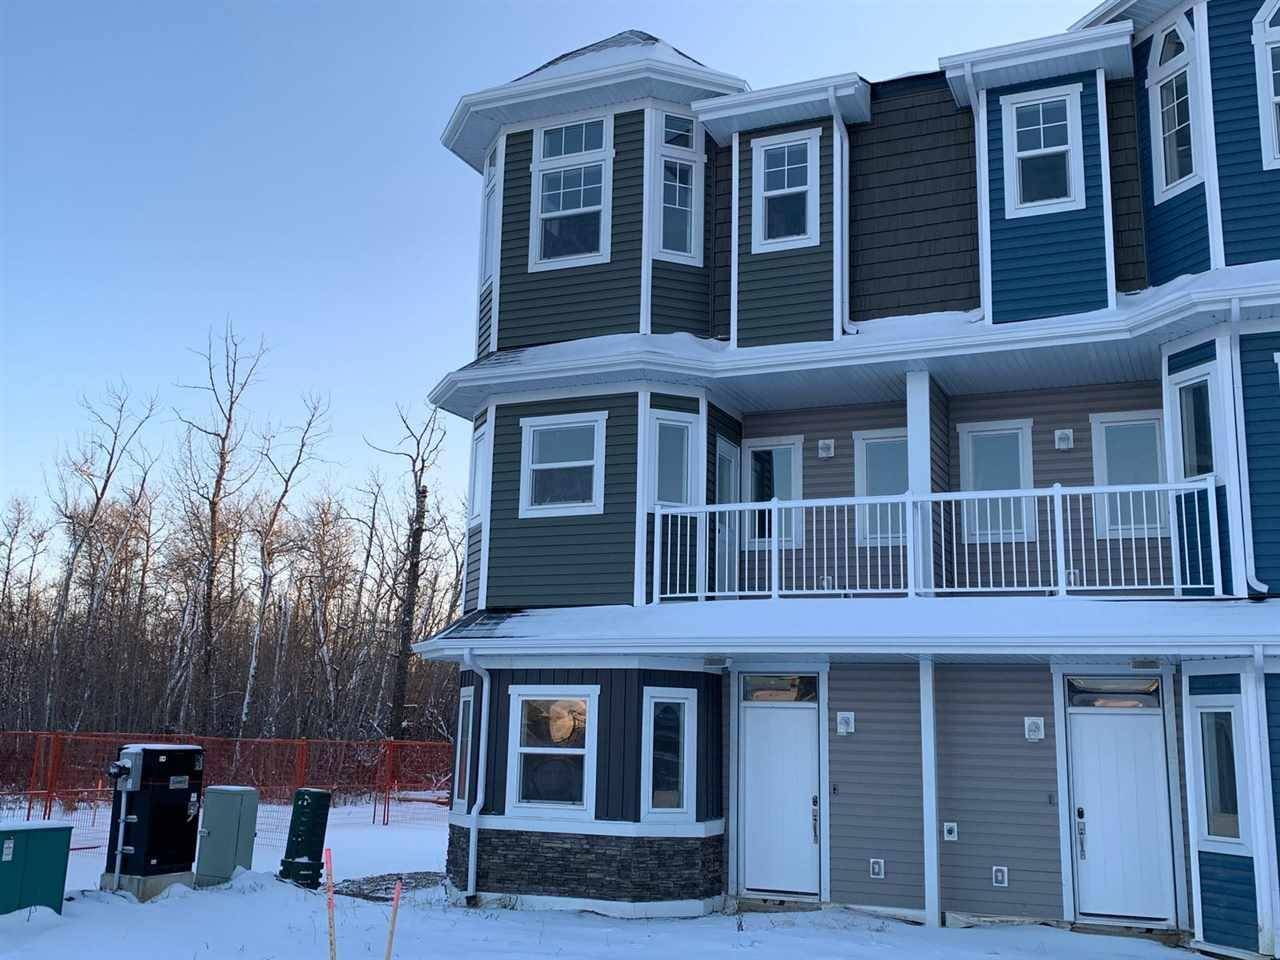 Townhouse for sale at 150 Everitt Dr N Unit 22 St. Albert Alberta - MLS: E4176991